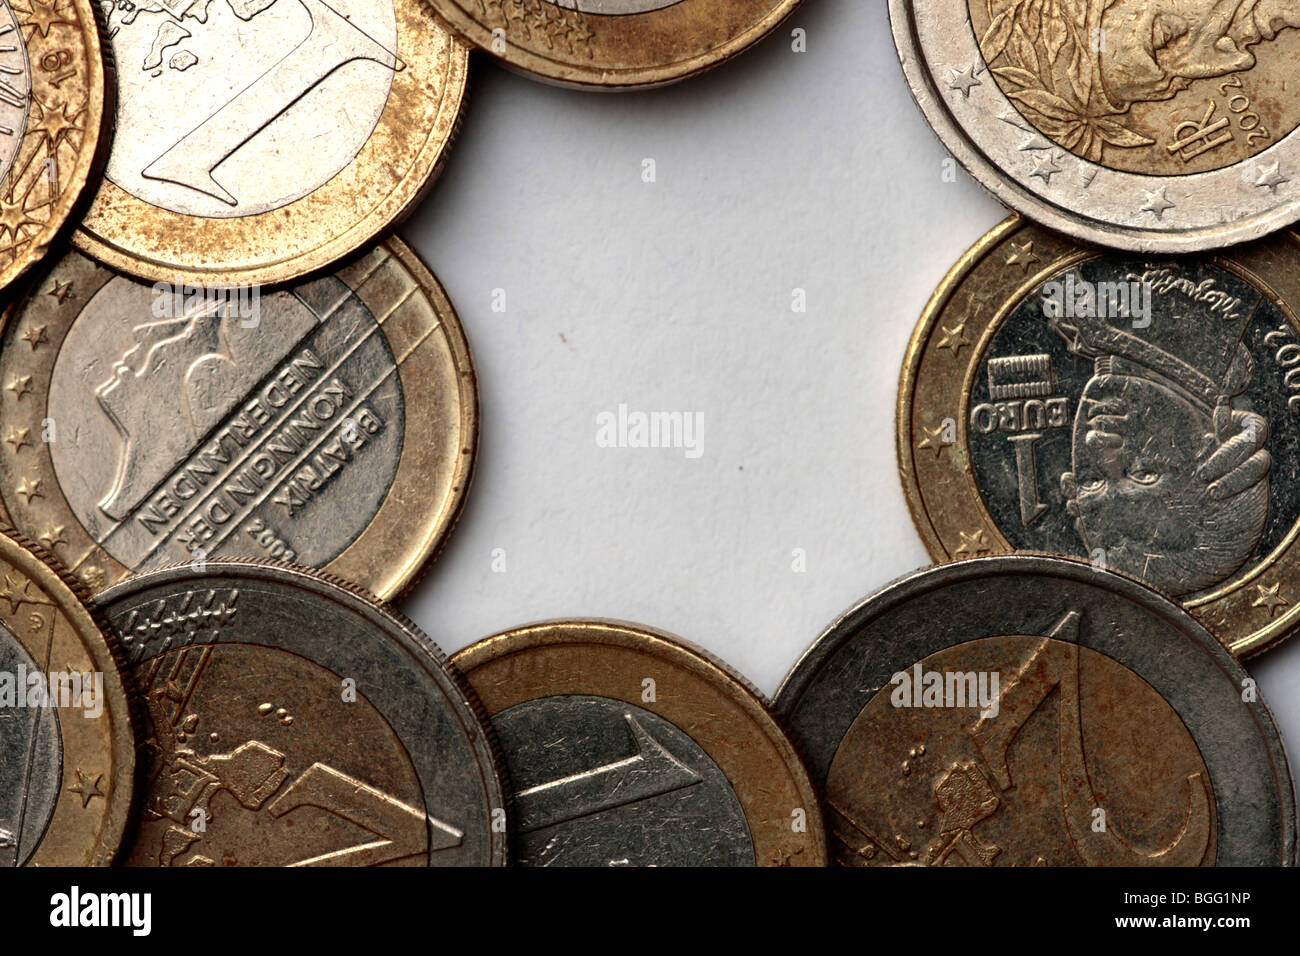 A frame of Euro coins - Stock Image